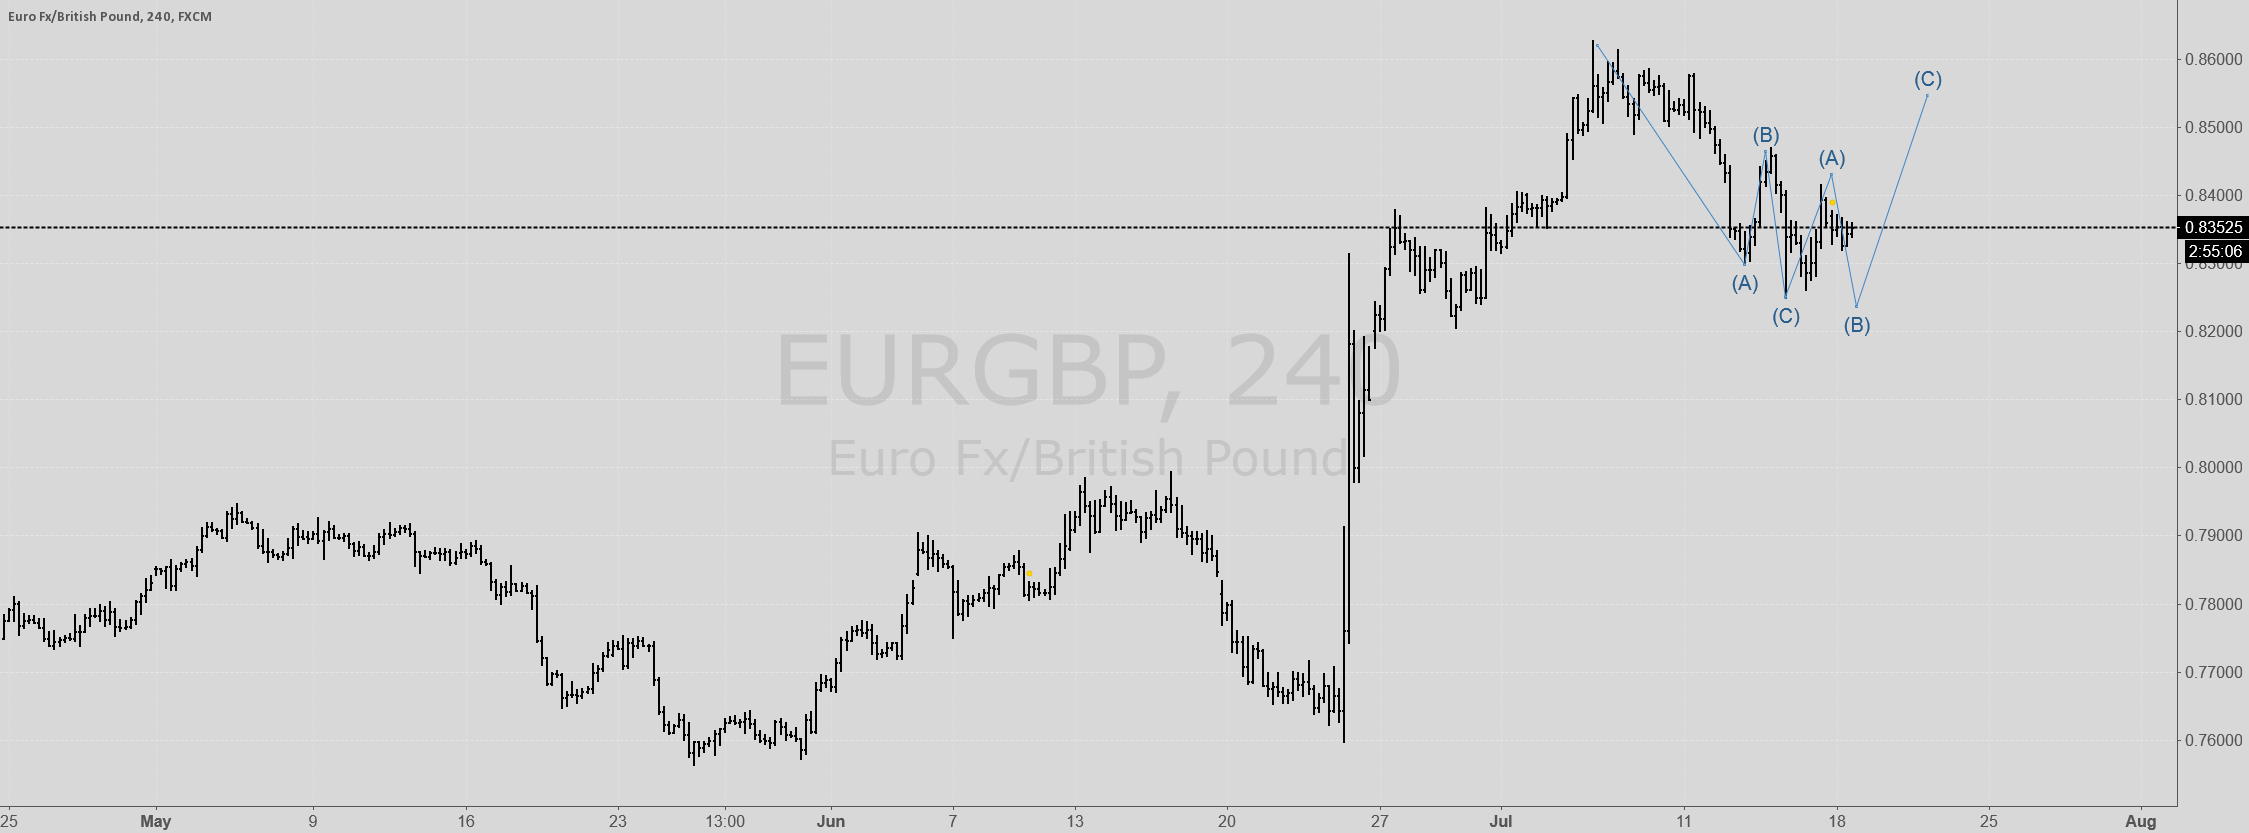 EURJPY going up after correction